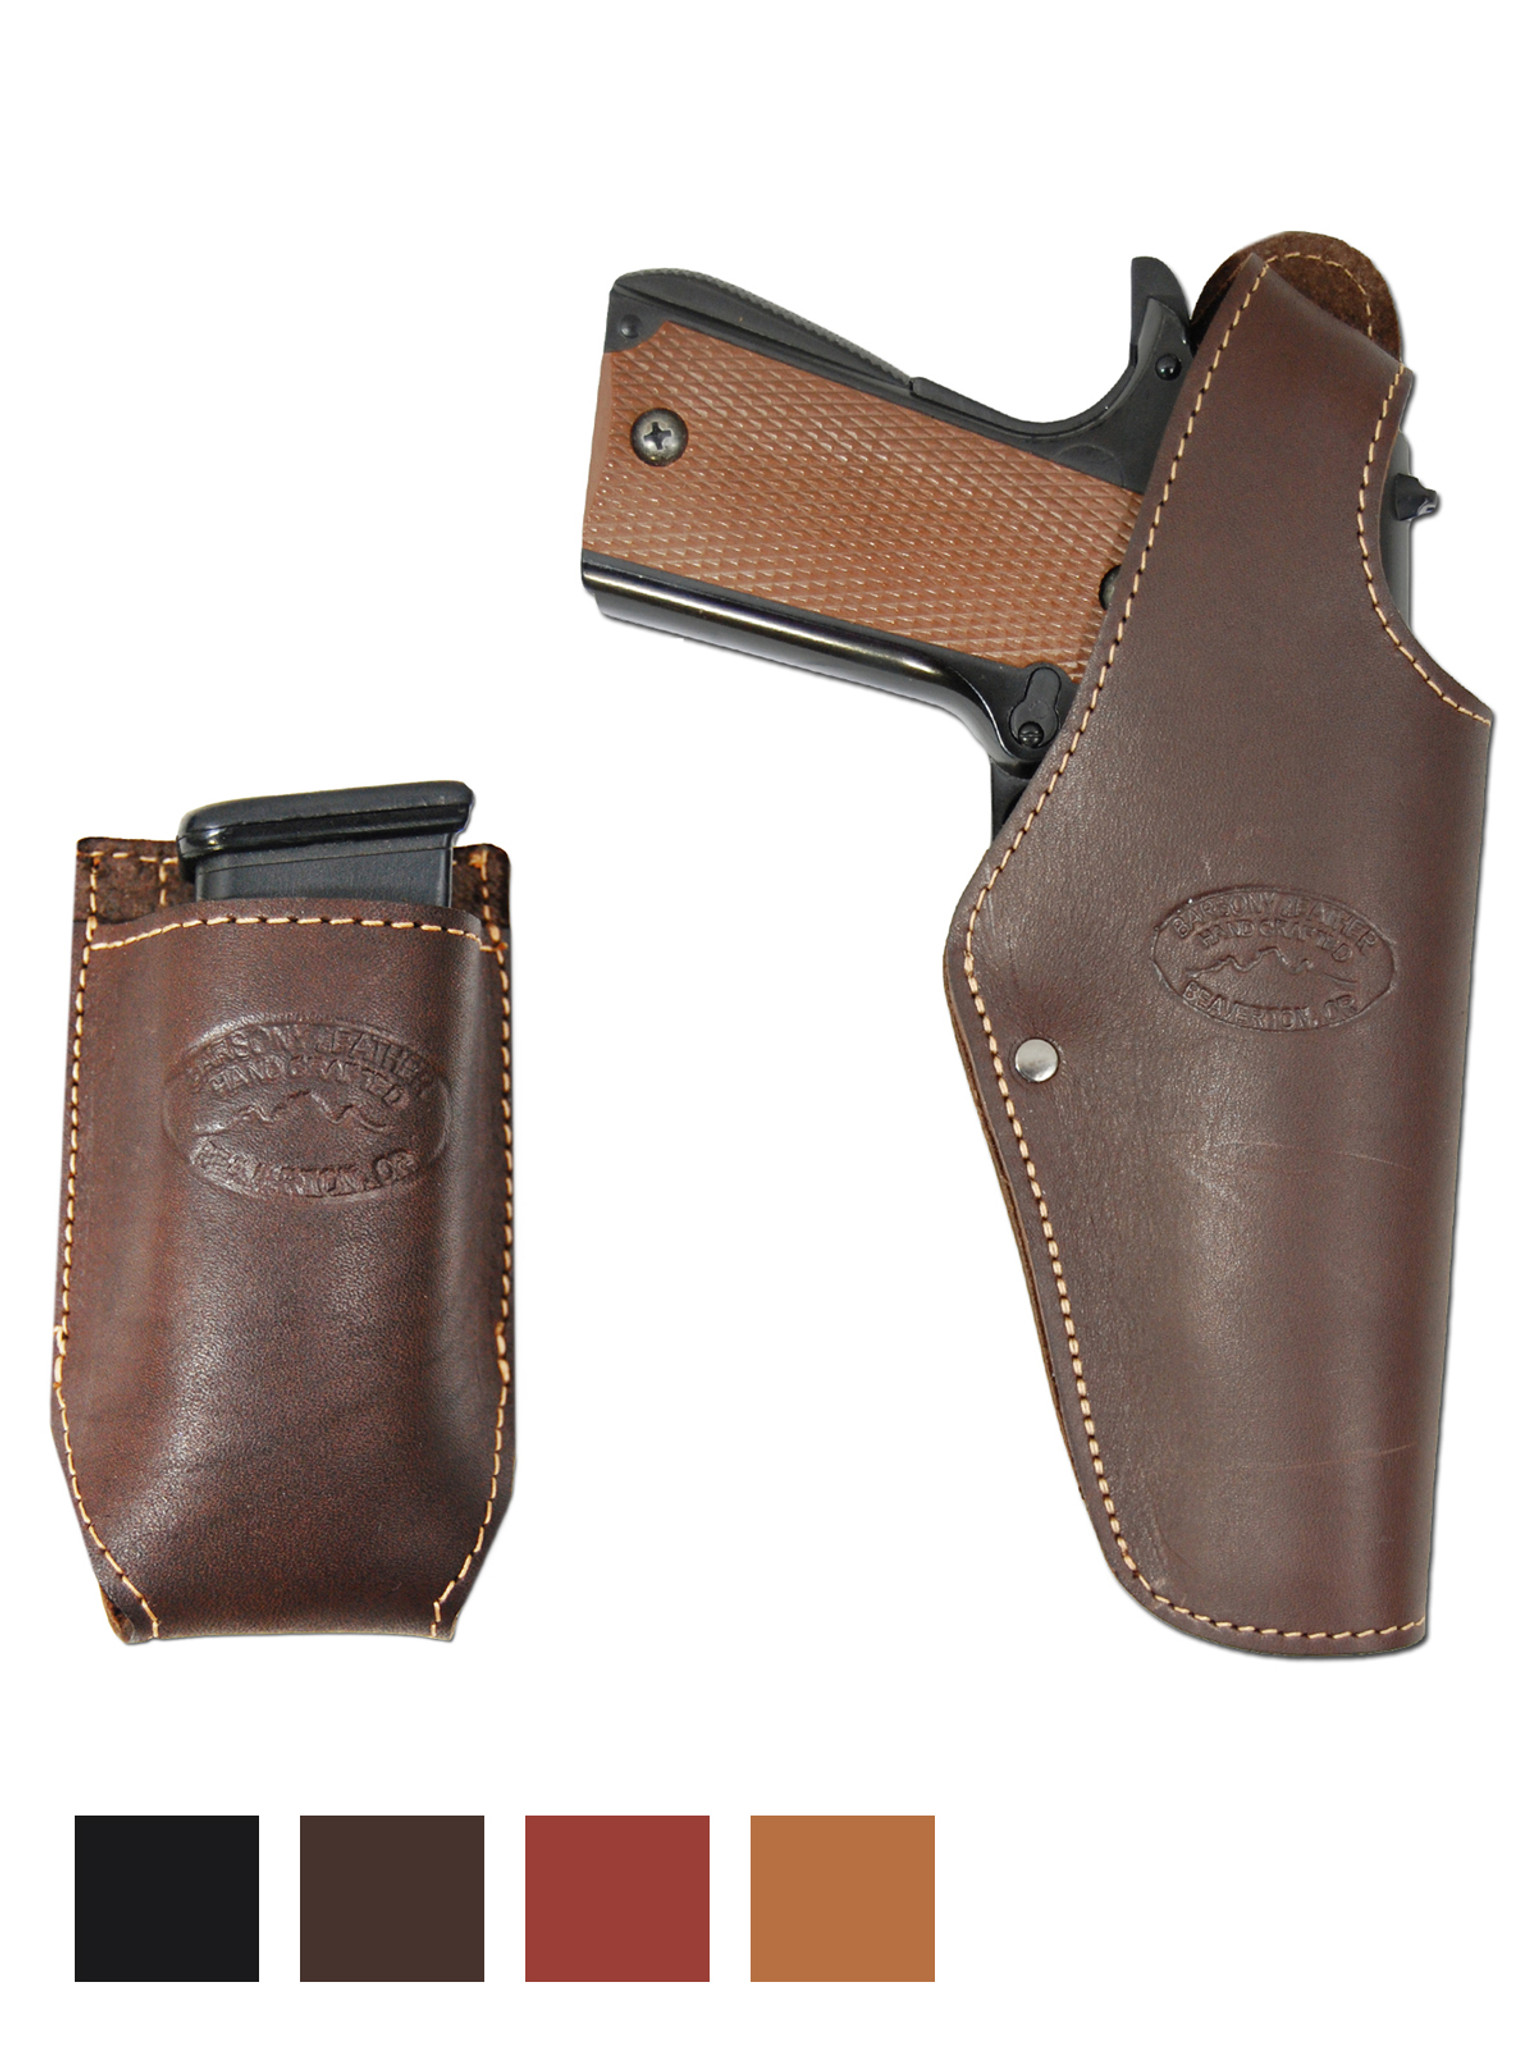 Leather OWB Holster + Single Magazine Pouch for Full Size 9mm 40 45